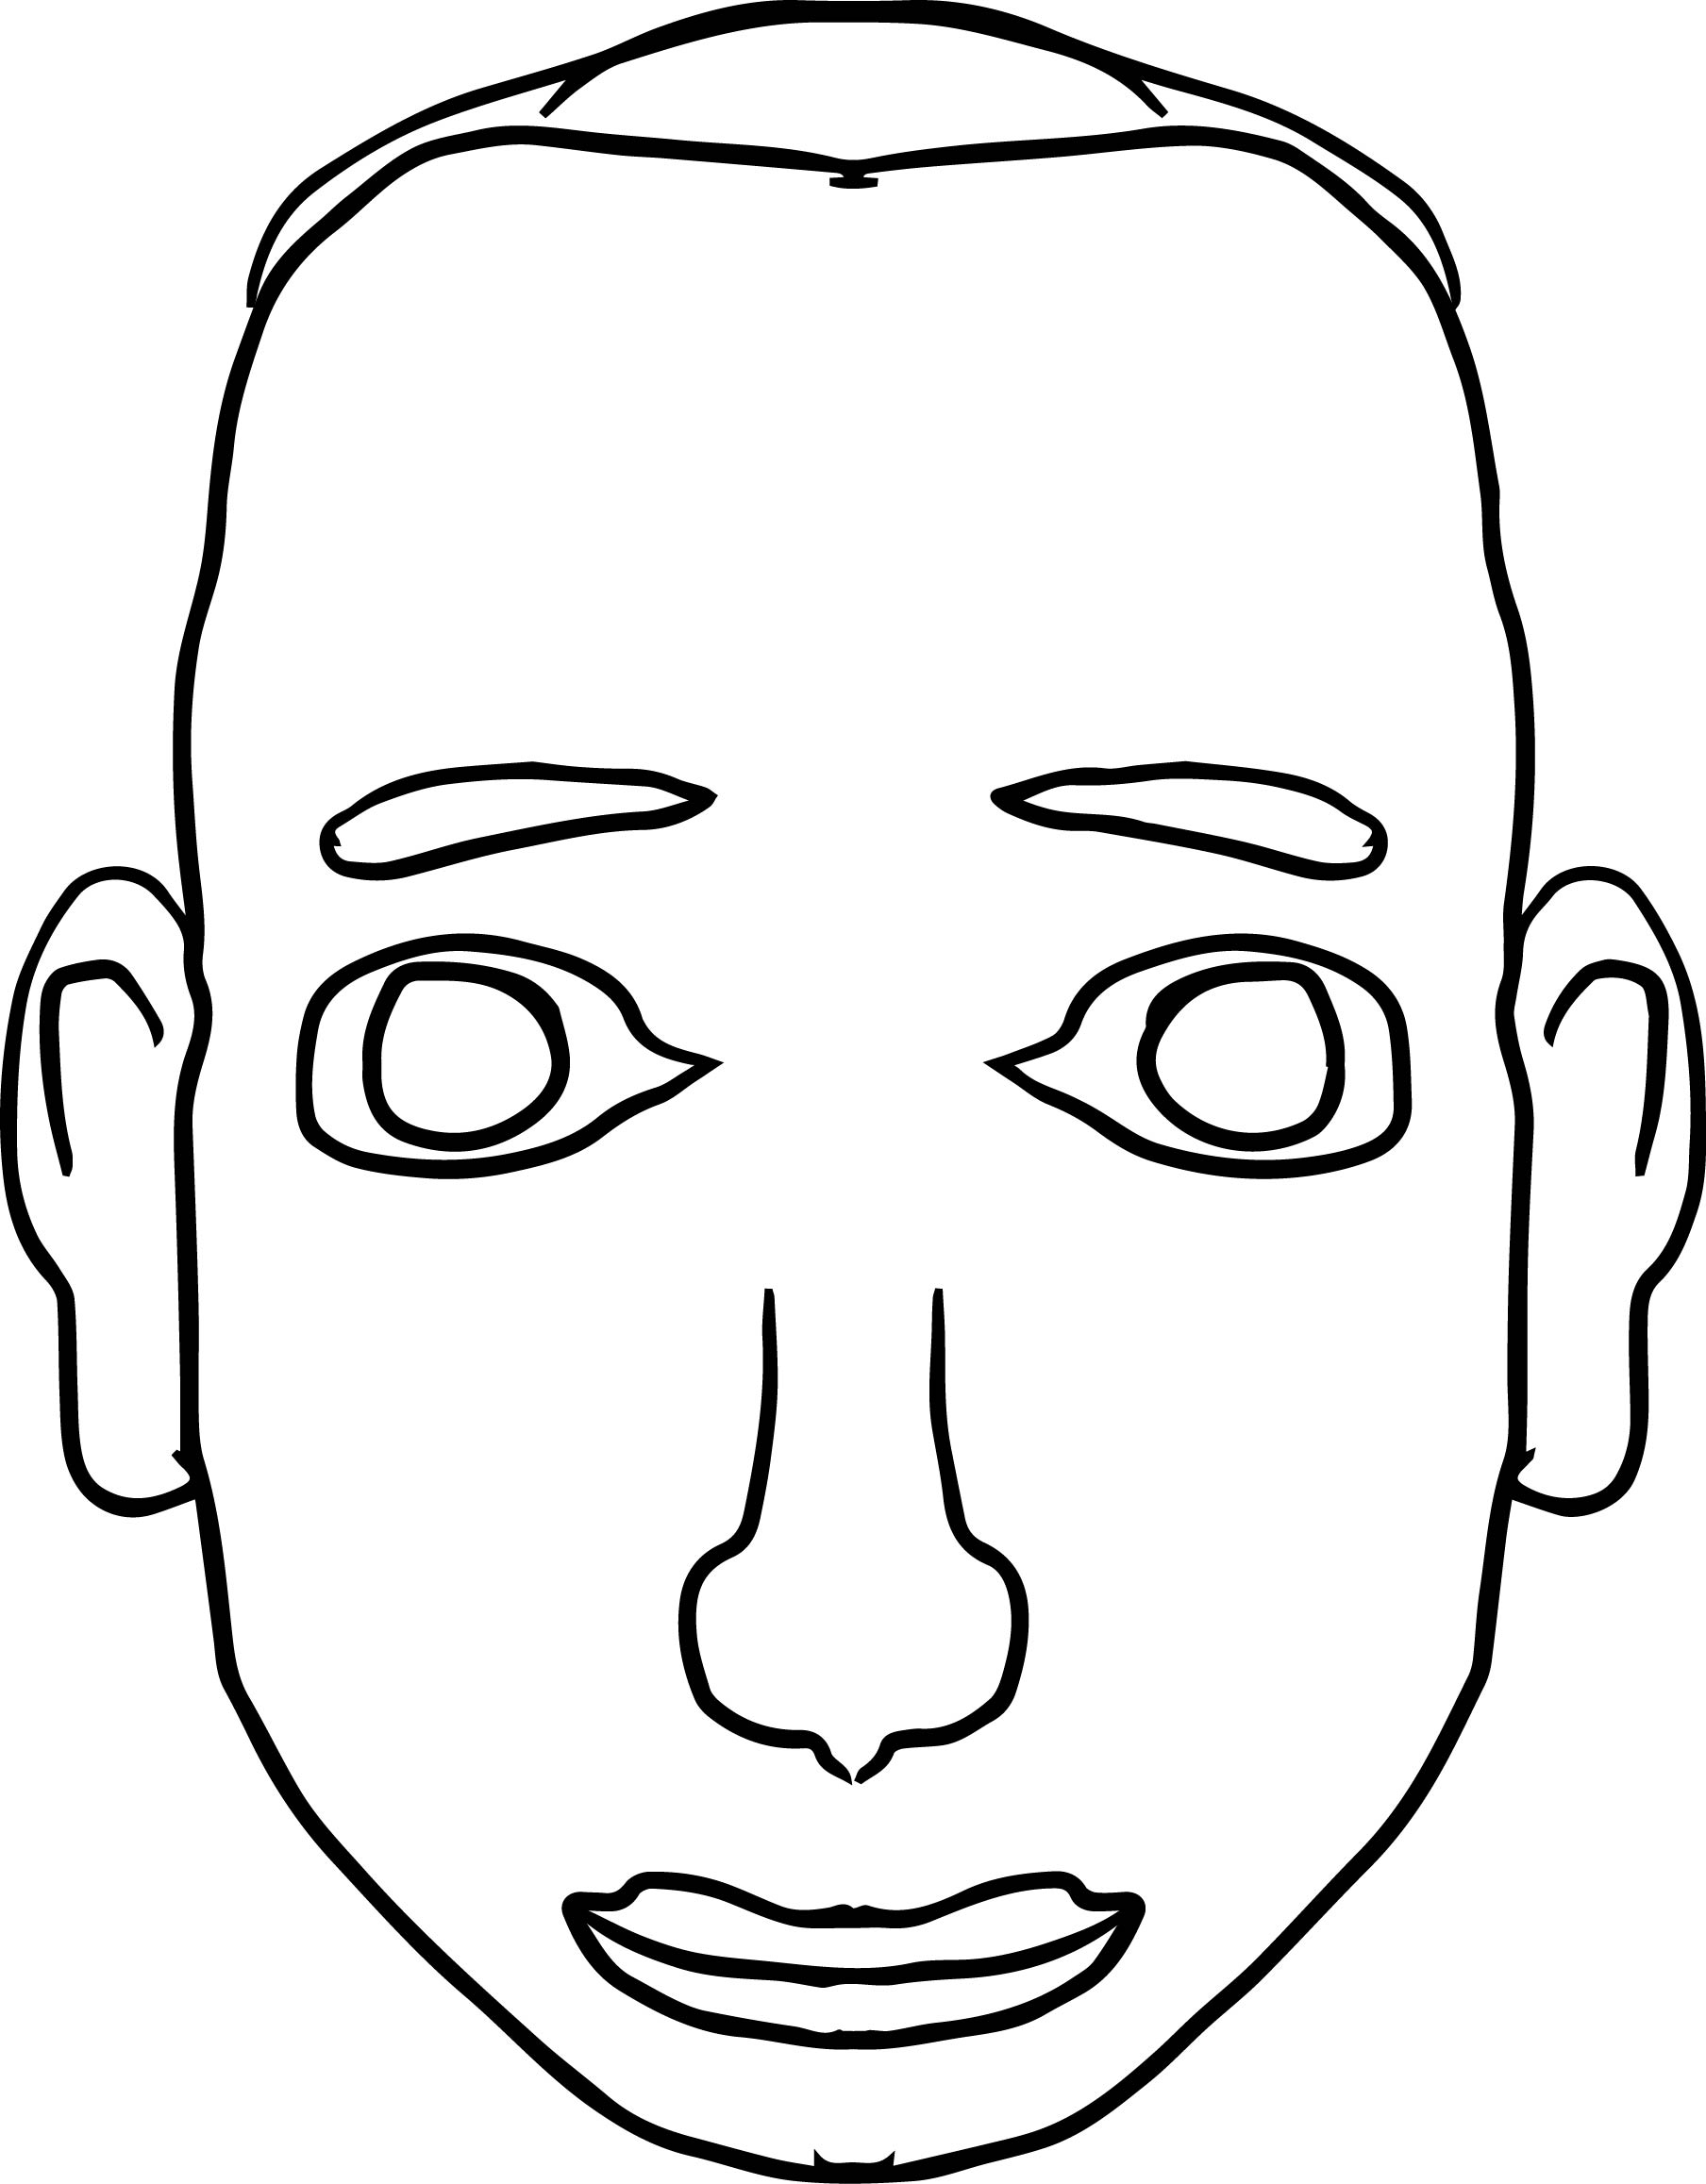 man face coloring pages - photo#13